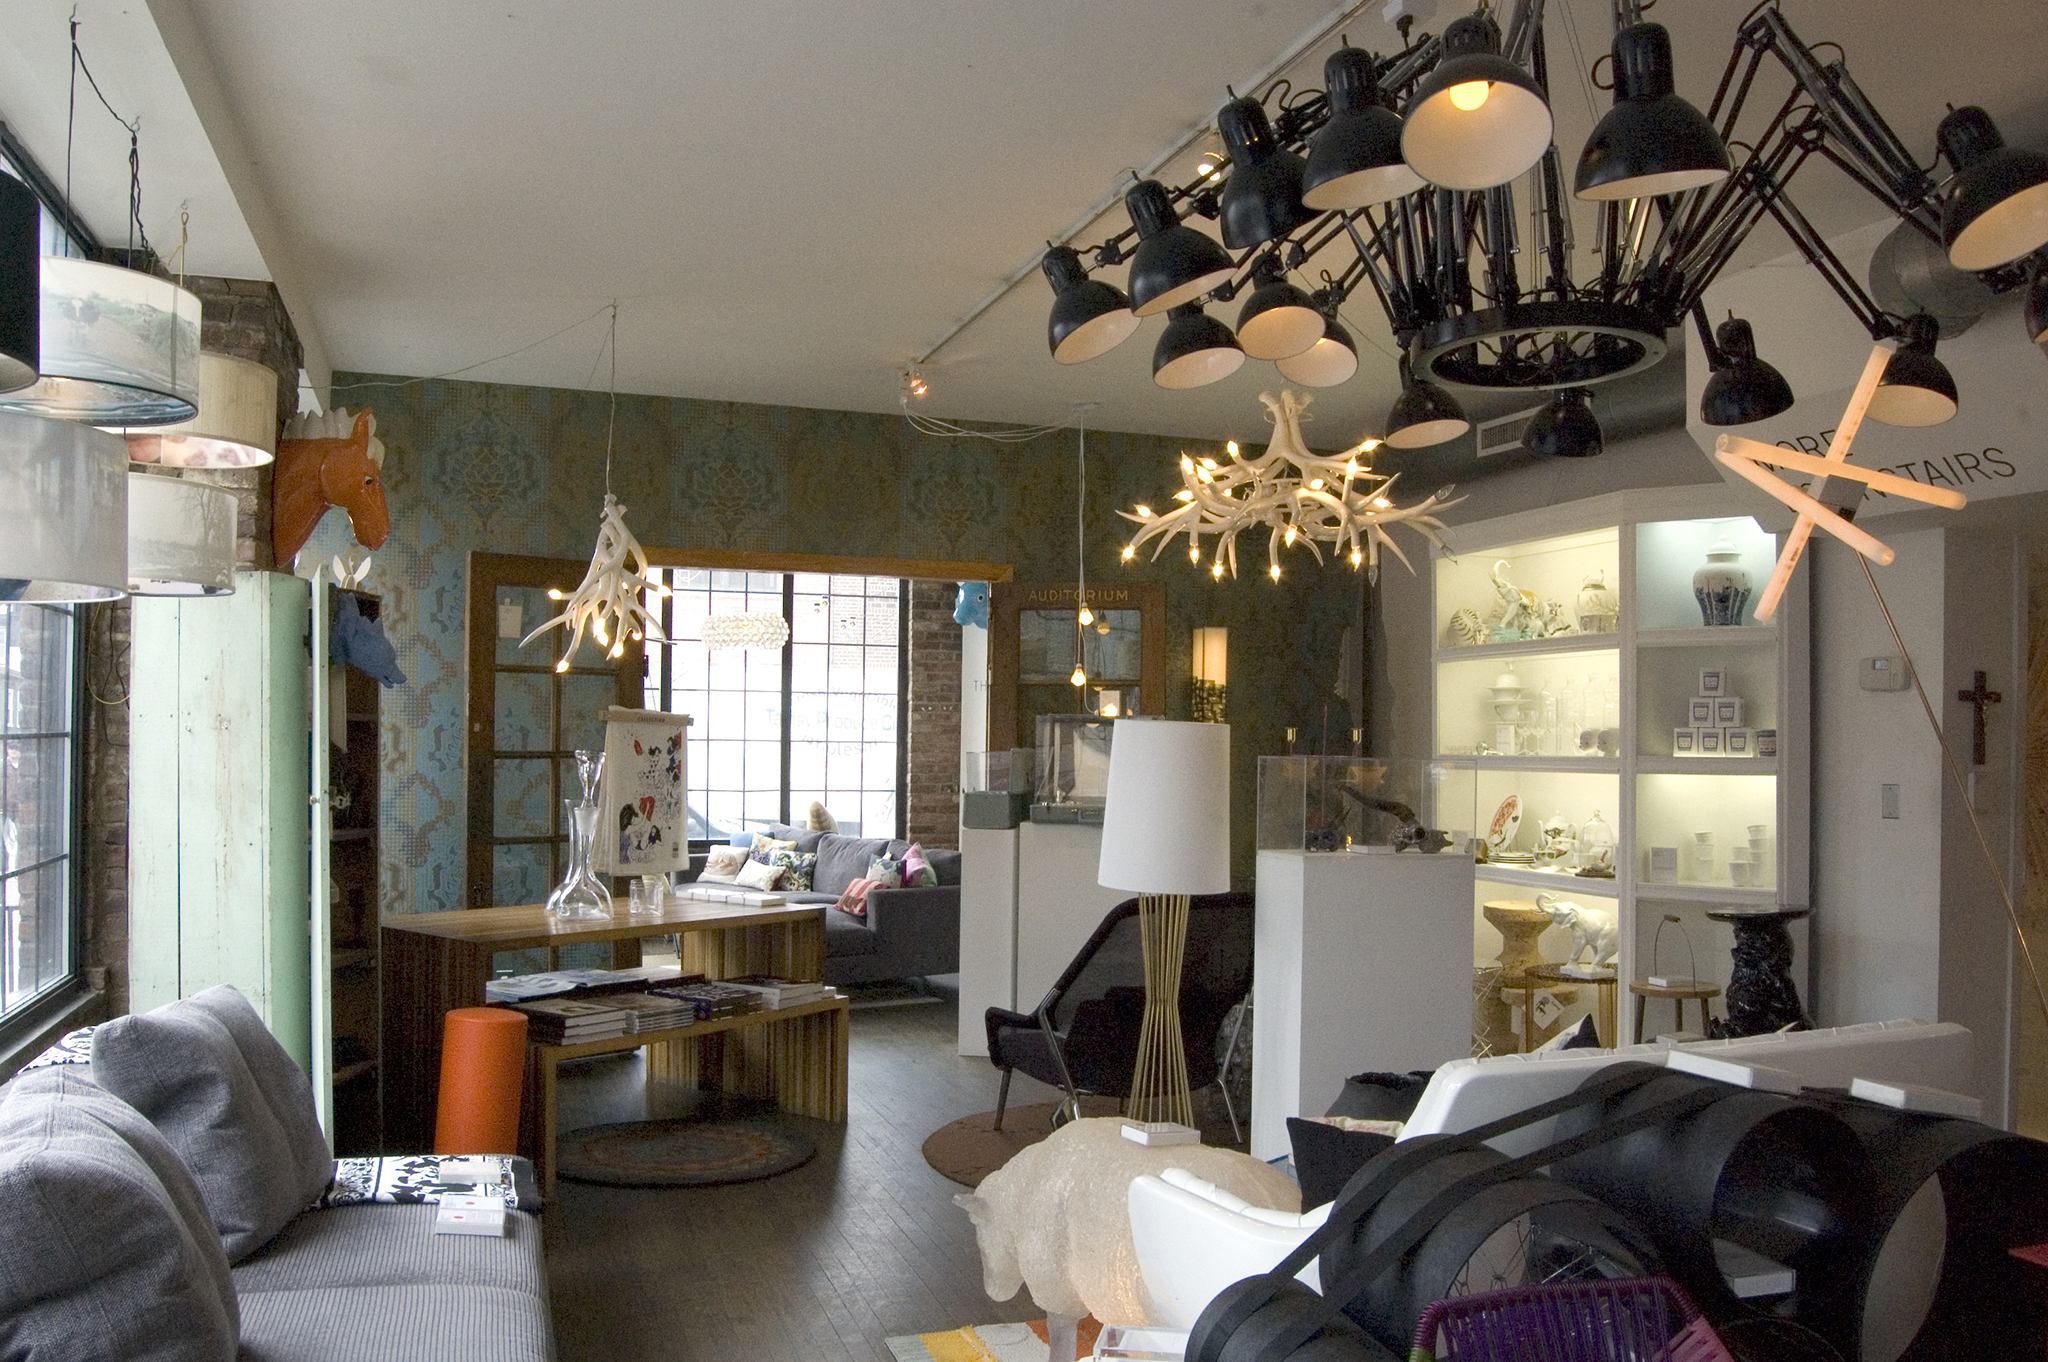 Home decor stores in NYC for decorating ideas and home furnishings The Future Perfect